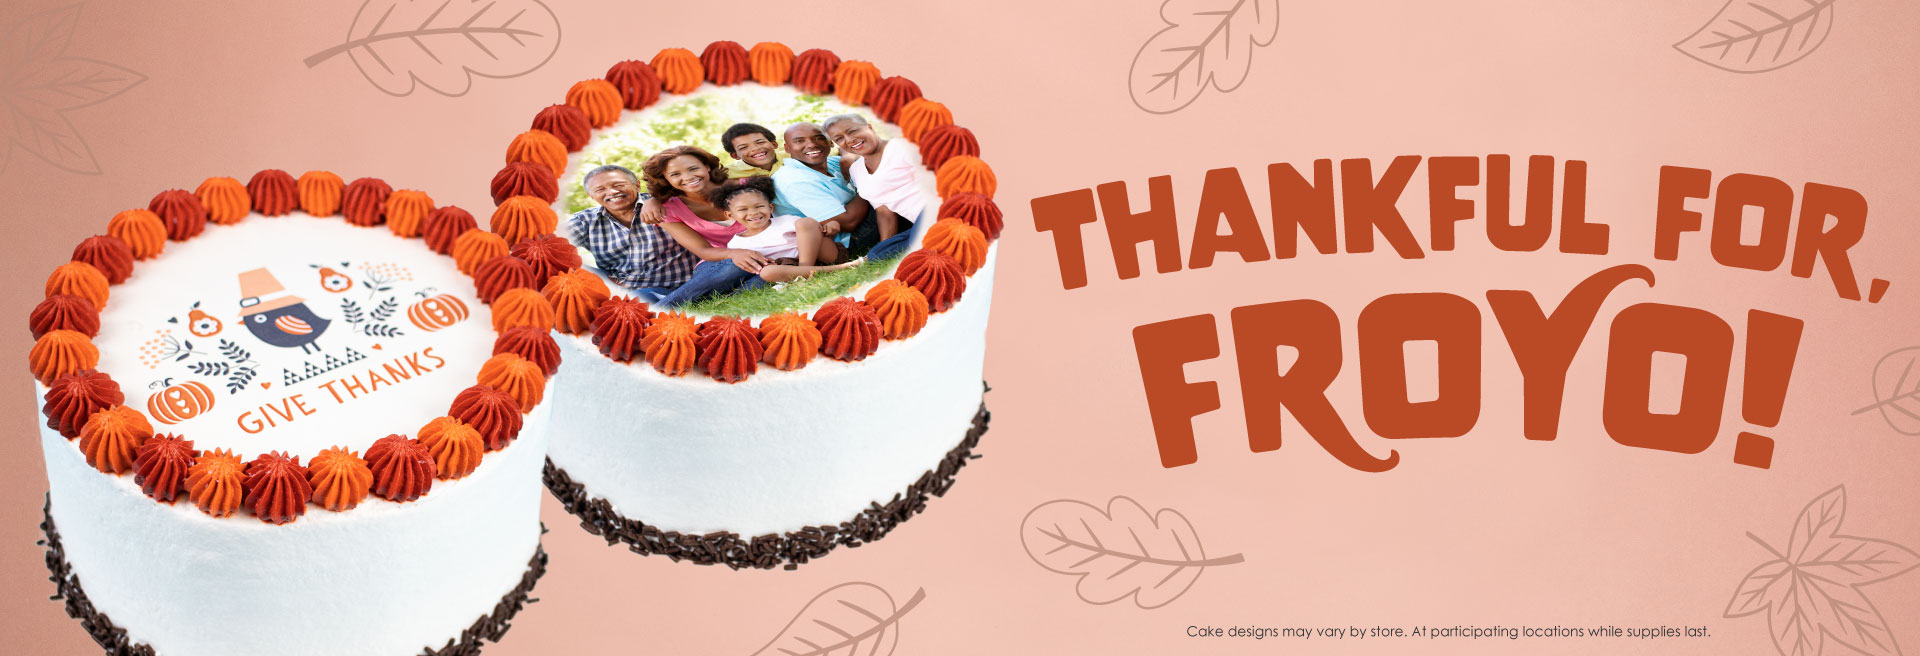 "Thanksgiving dessert just got even better with Menchie's ""Give Thanks"" froyo cake! Our cakes are made in-house and are customizable with your favorite frozen yogurt flavors and toppings."